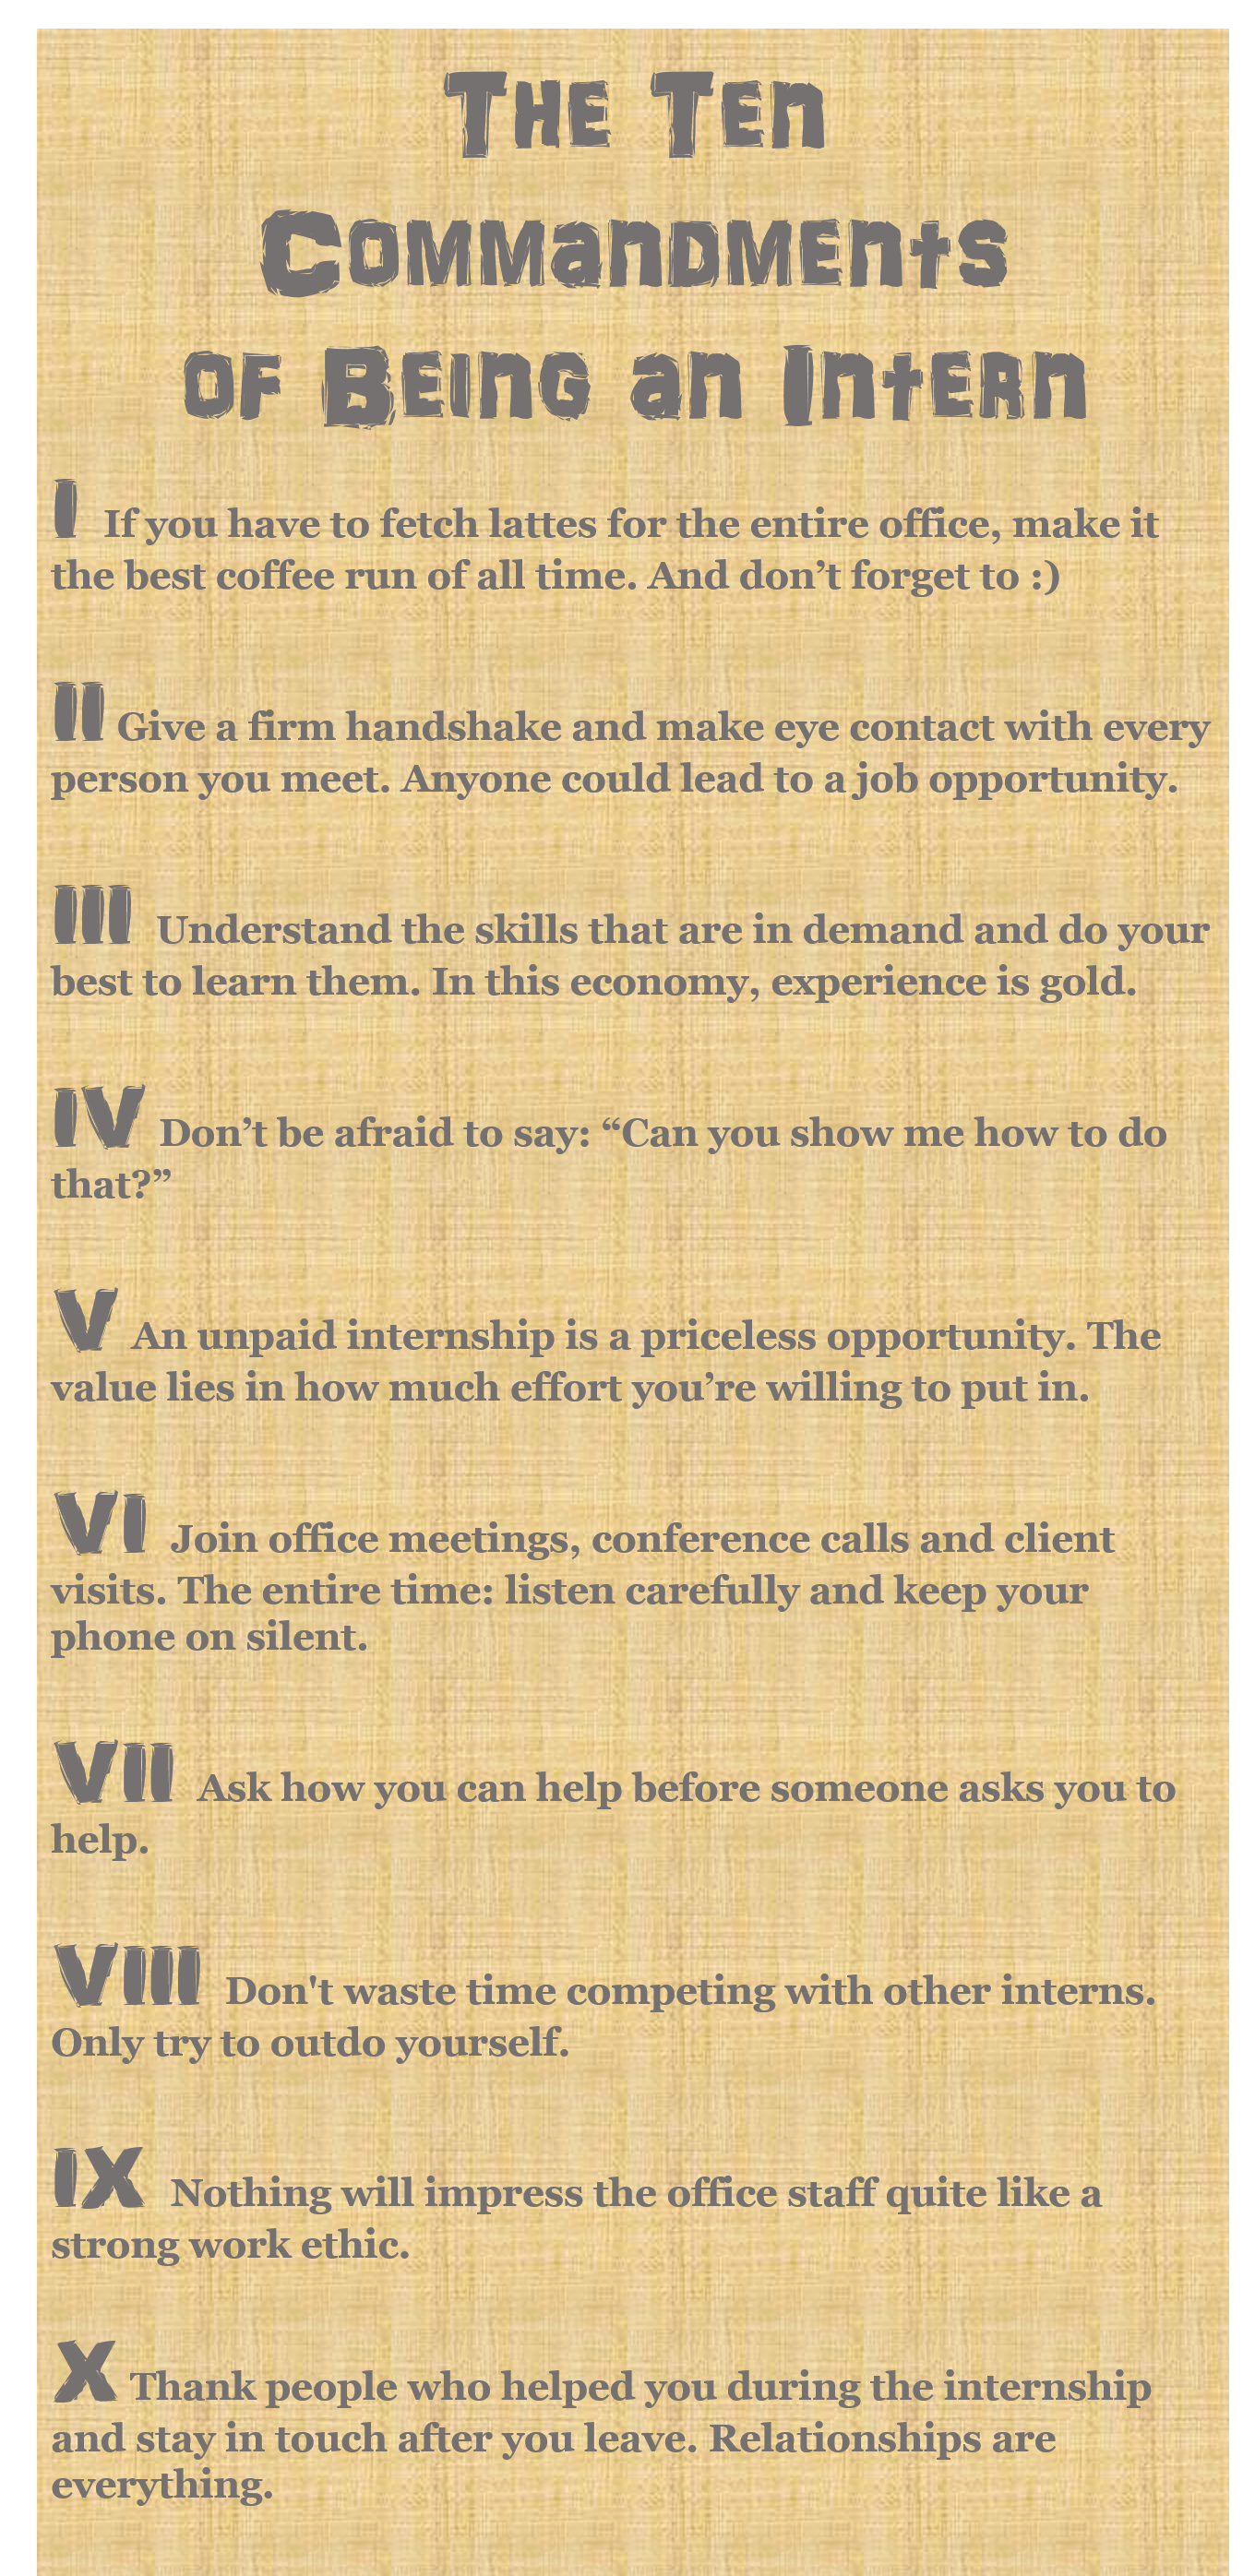 the 10 commandment of being